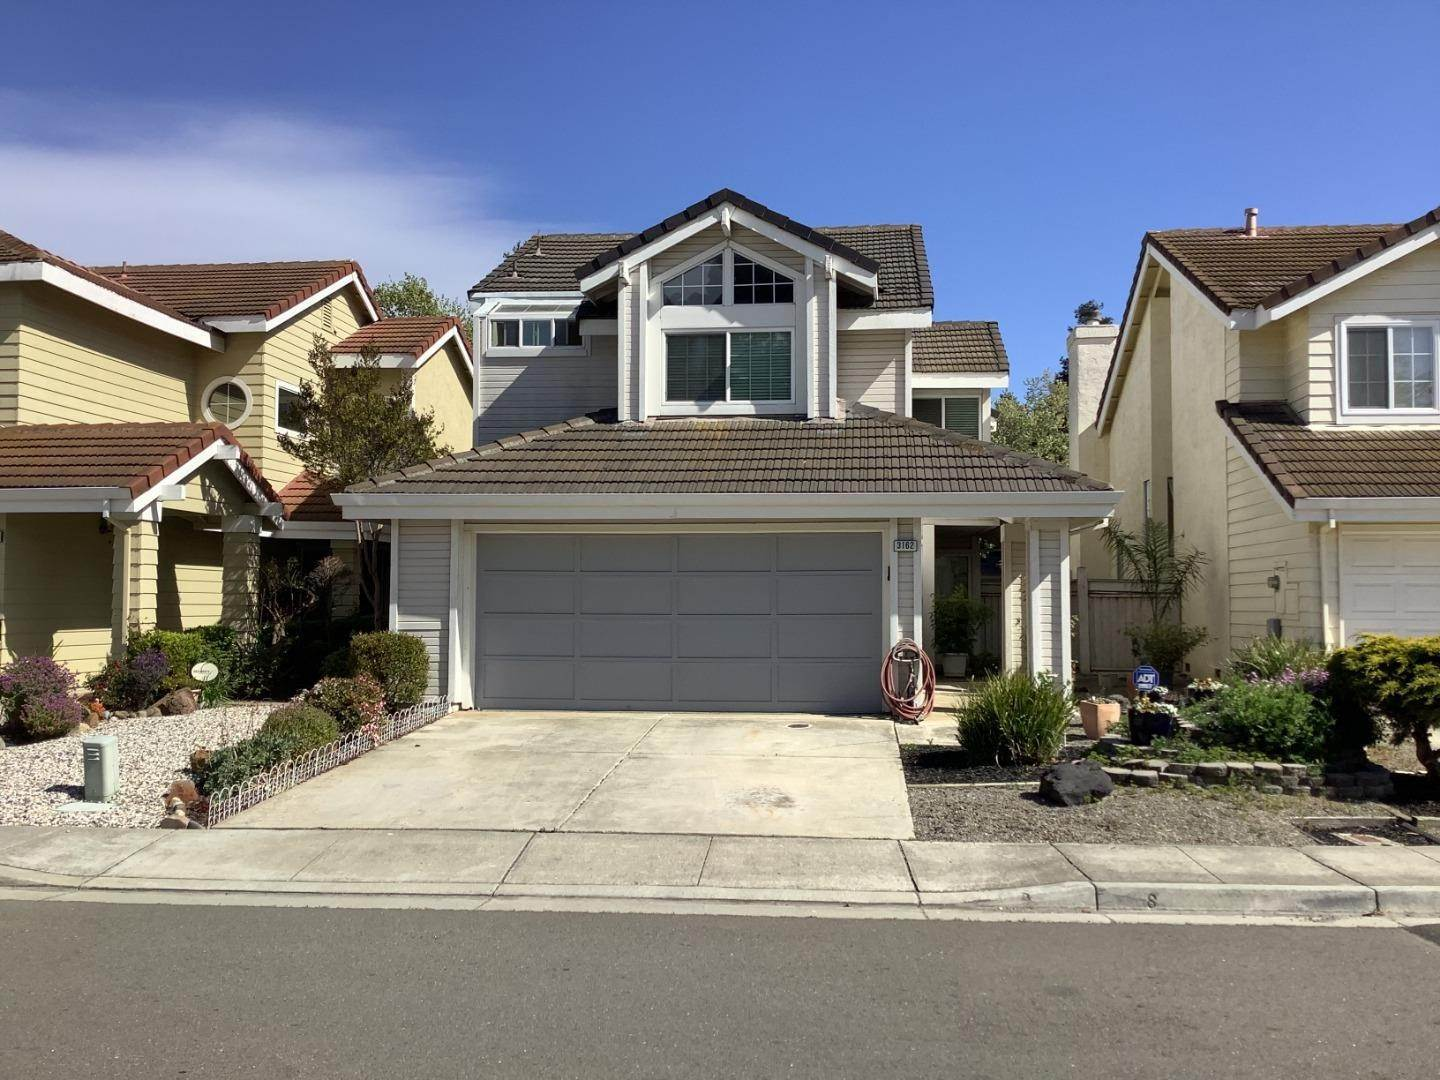 Single Family Homes at 3162 Southwycke Terrace Fremont, カリフォルニア 94536 アメリカ